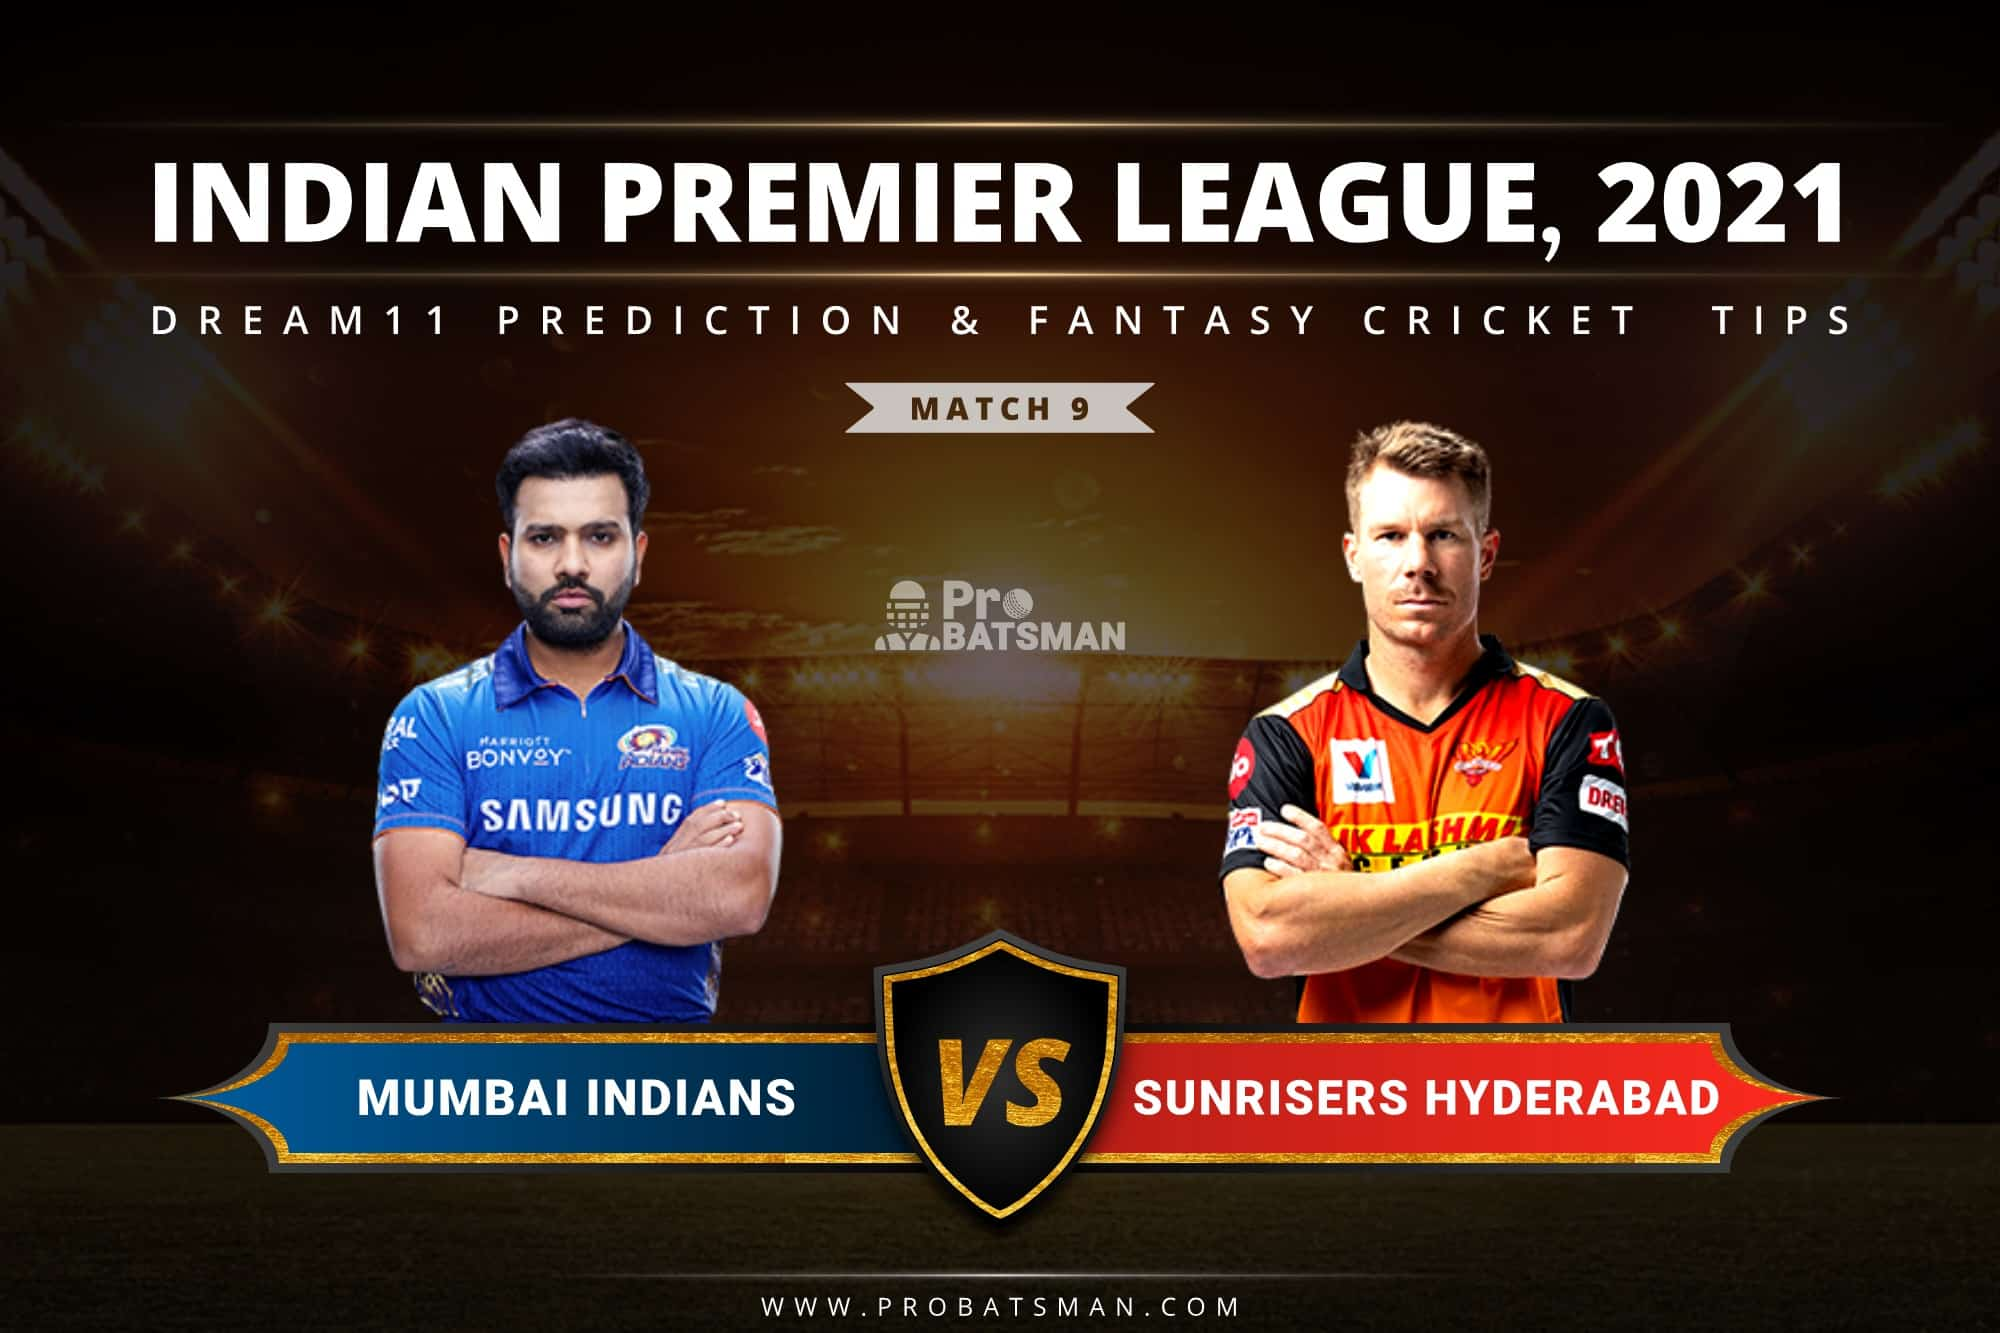 MI vs SRH Dream11 Prediction: Fantasy Cricket Tips, Playing XI, Pitch Report, Stats & Injury Updates of Match 9, IPL 2021